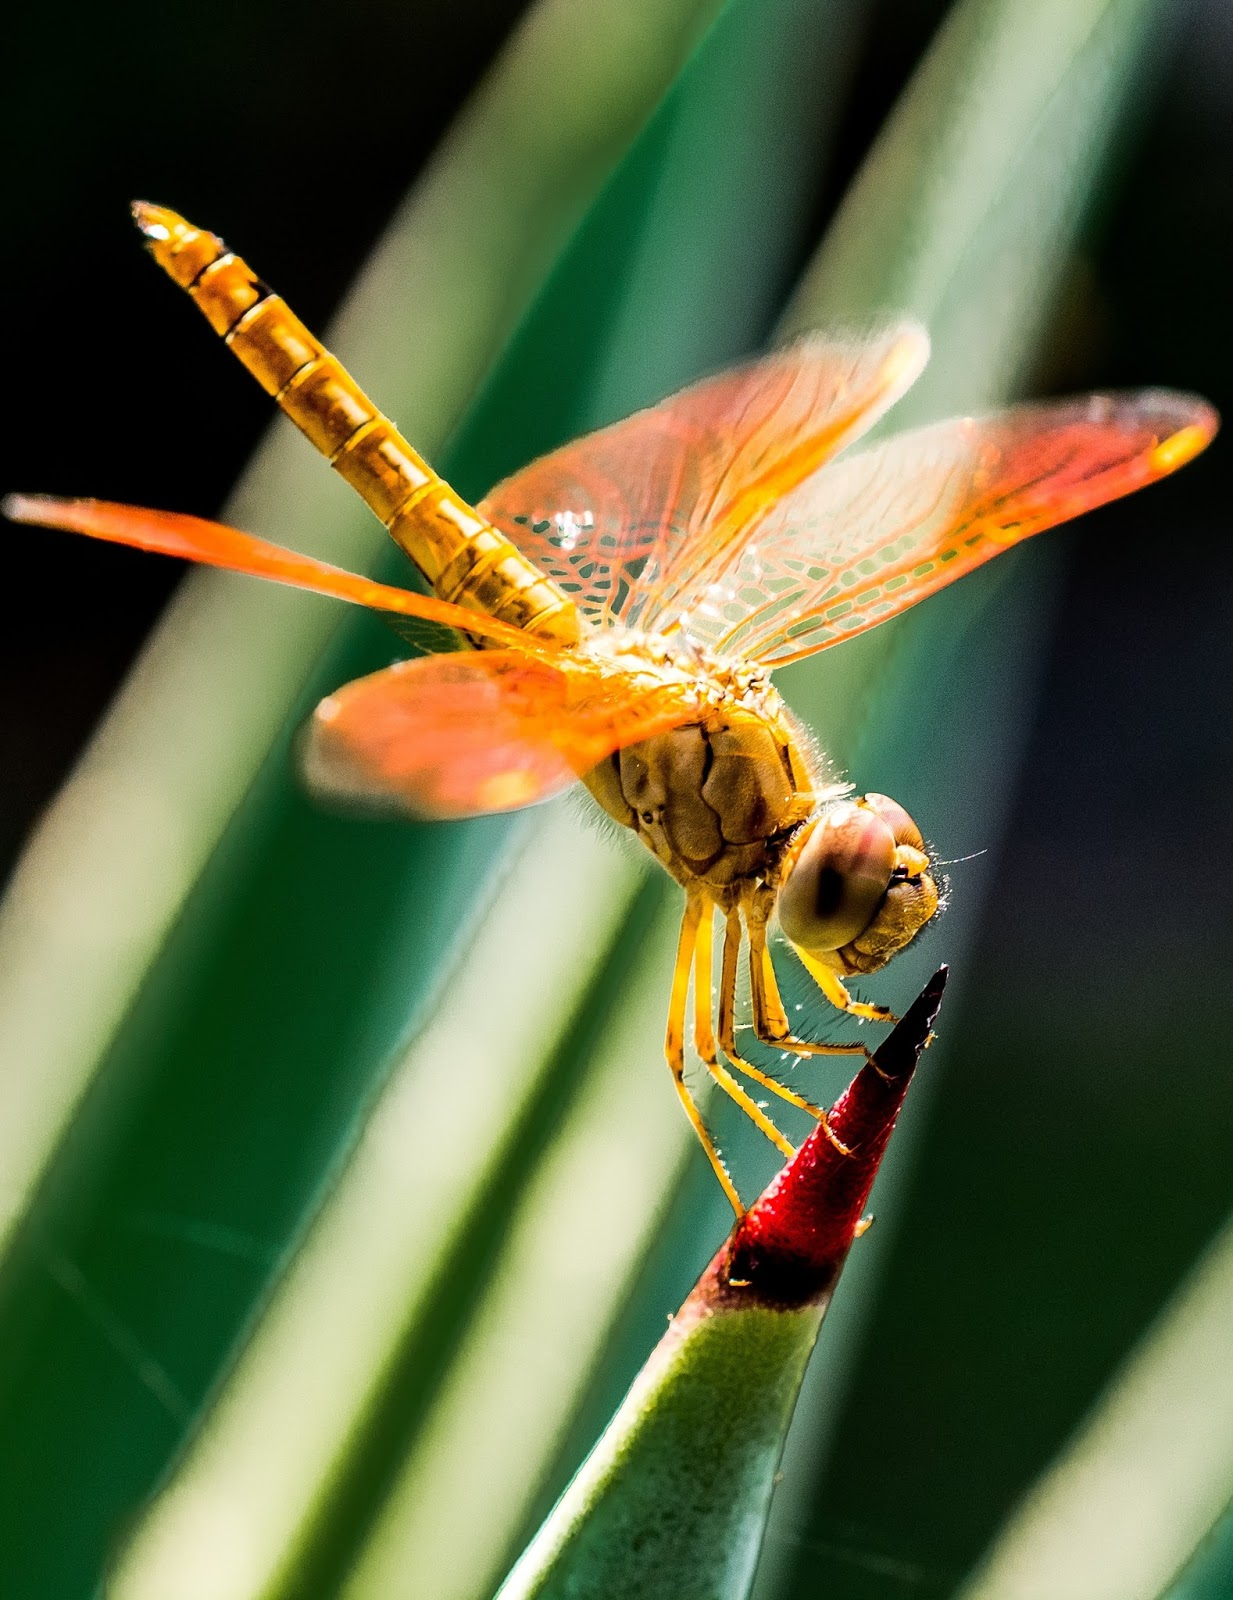 Image of a dragonfly.